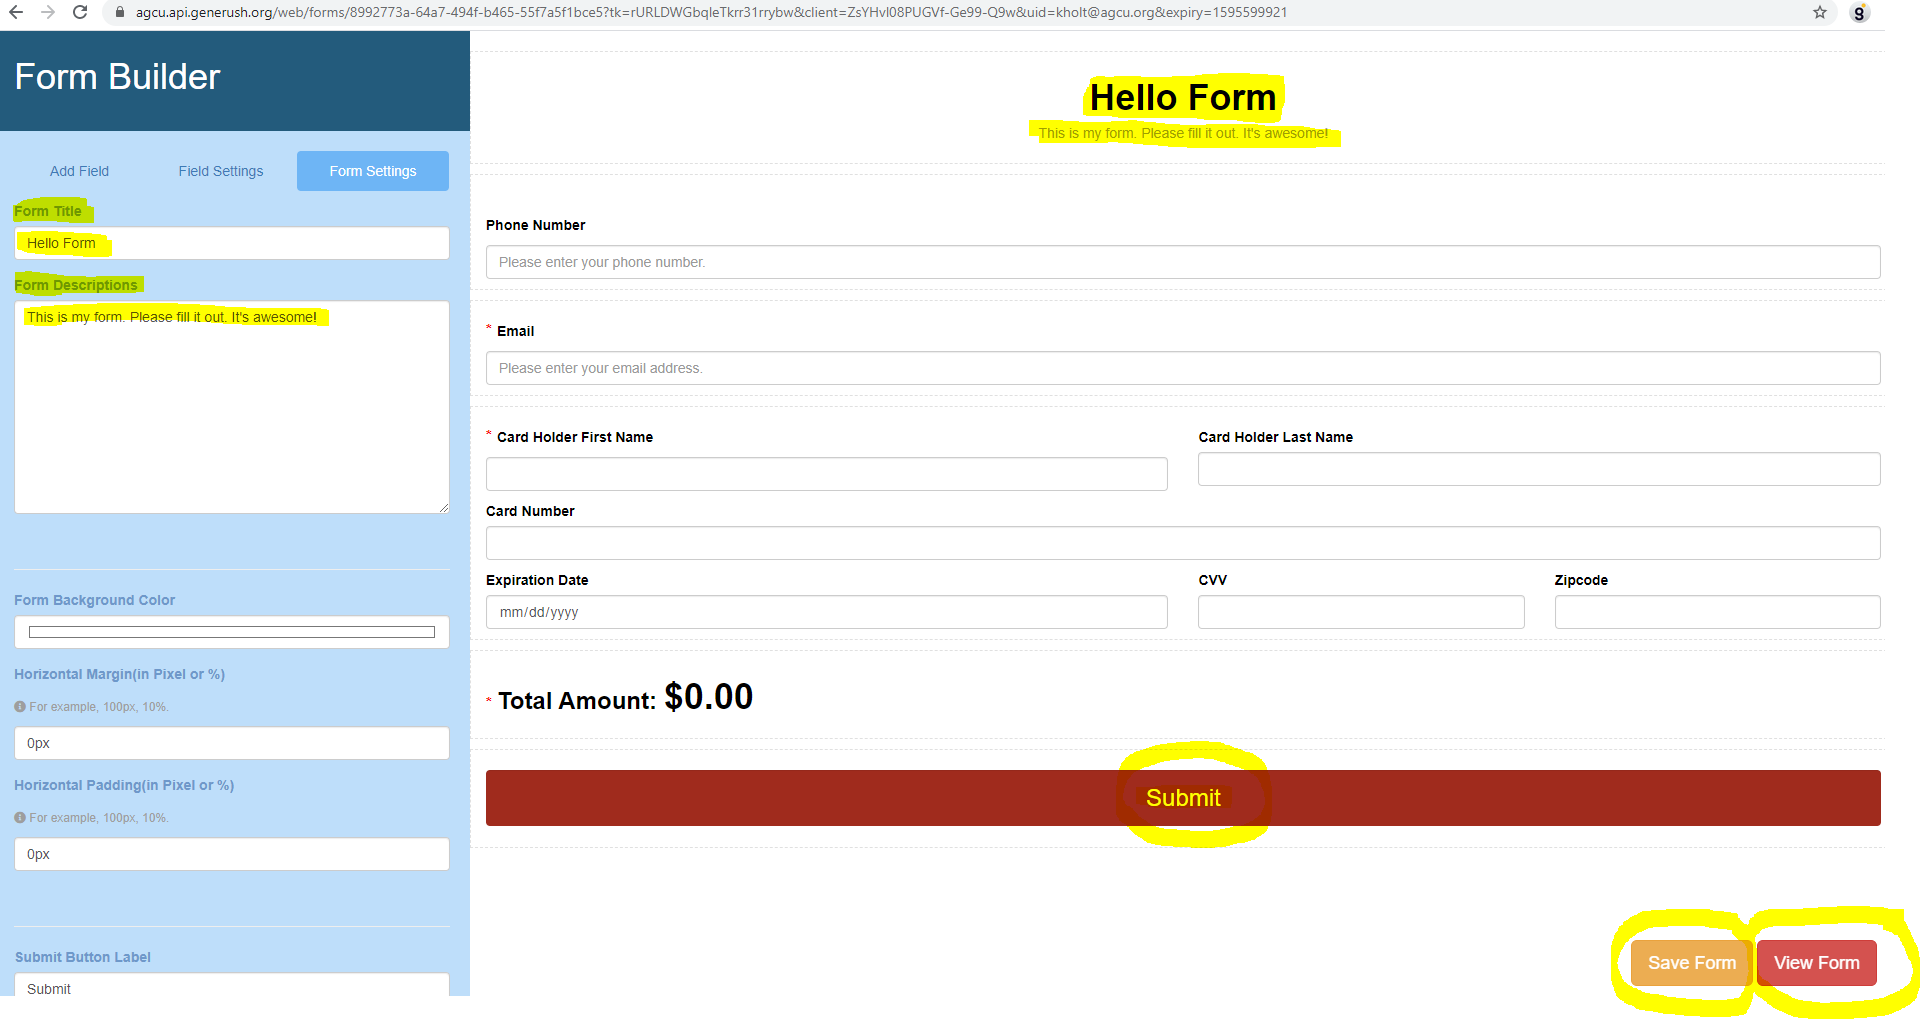 Form Settings Graphic Use